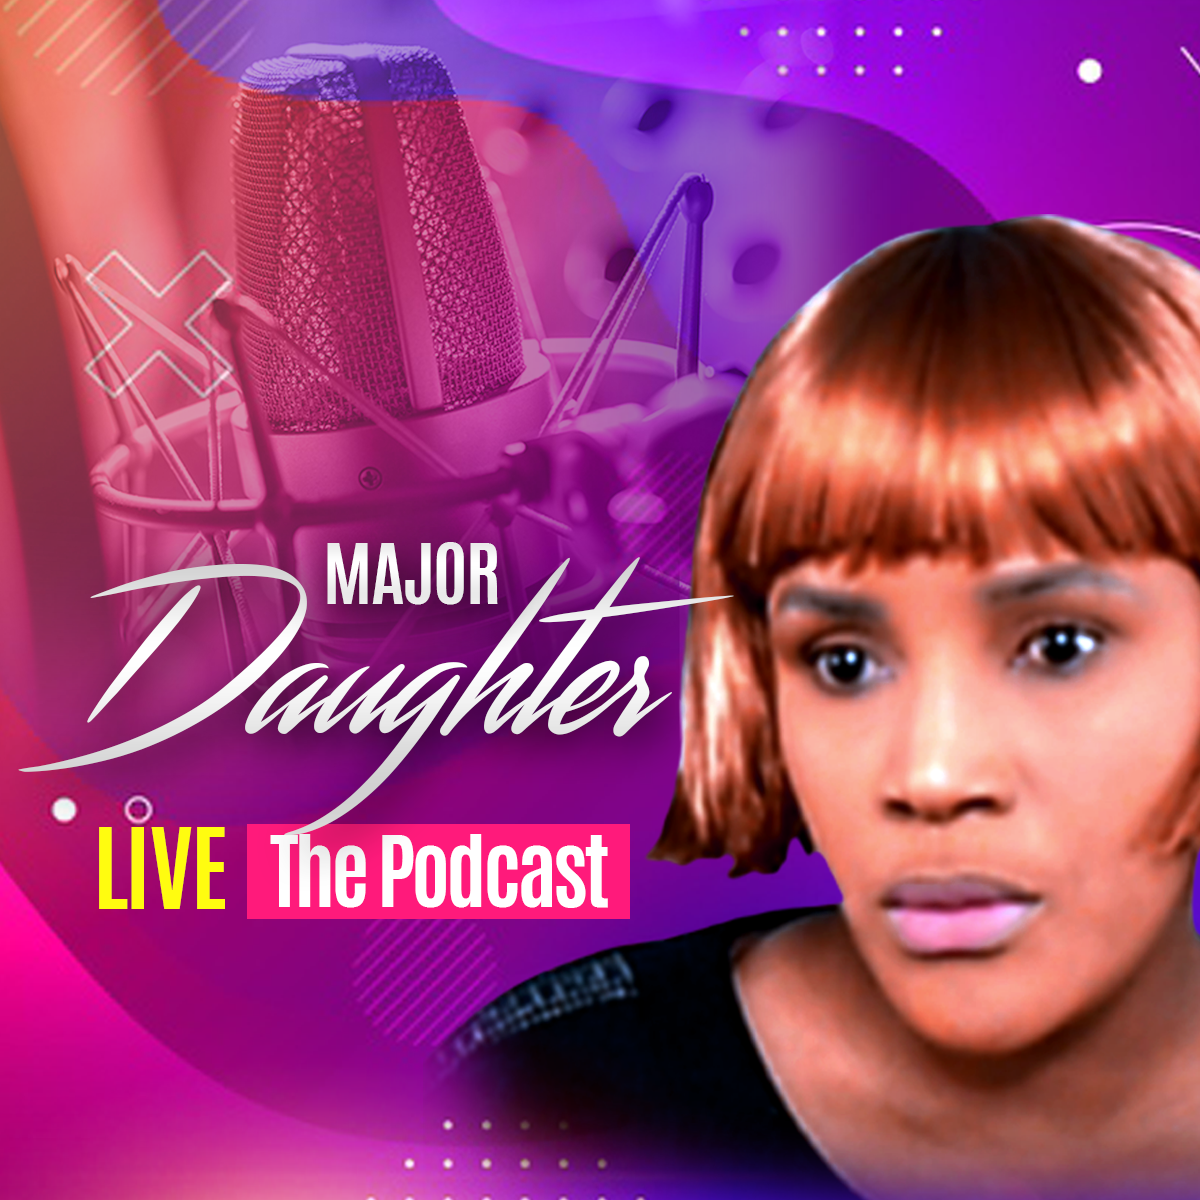 Prayer Influencer and Host Major Daughter Transforms Lives of Millions with her Podcast & Work